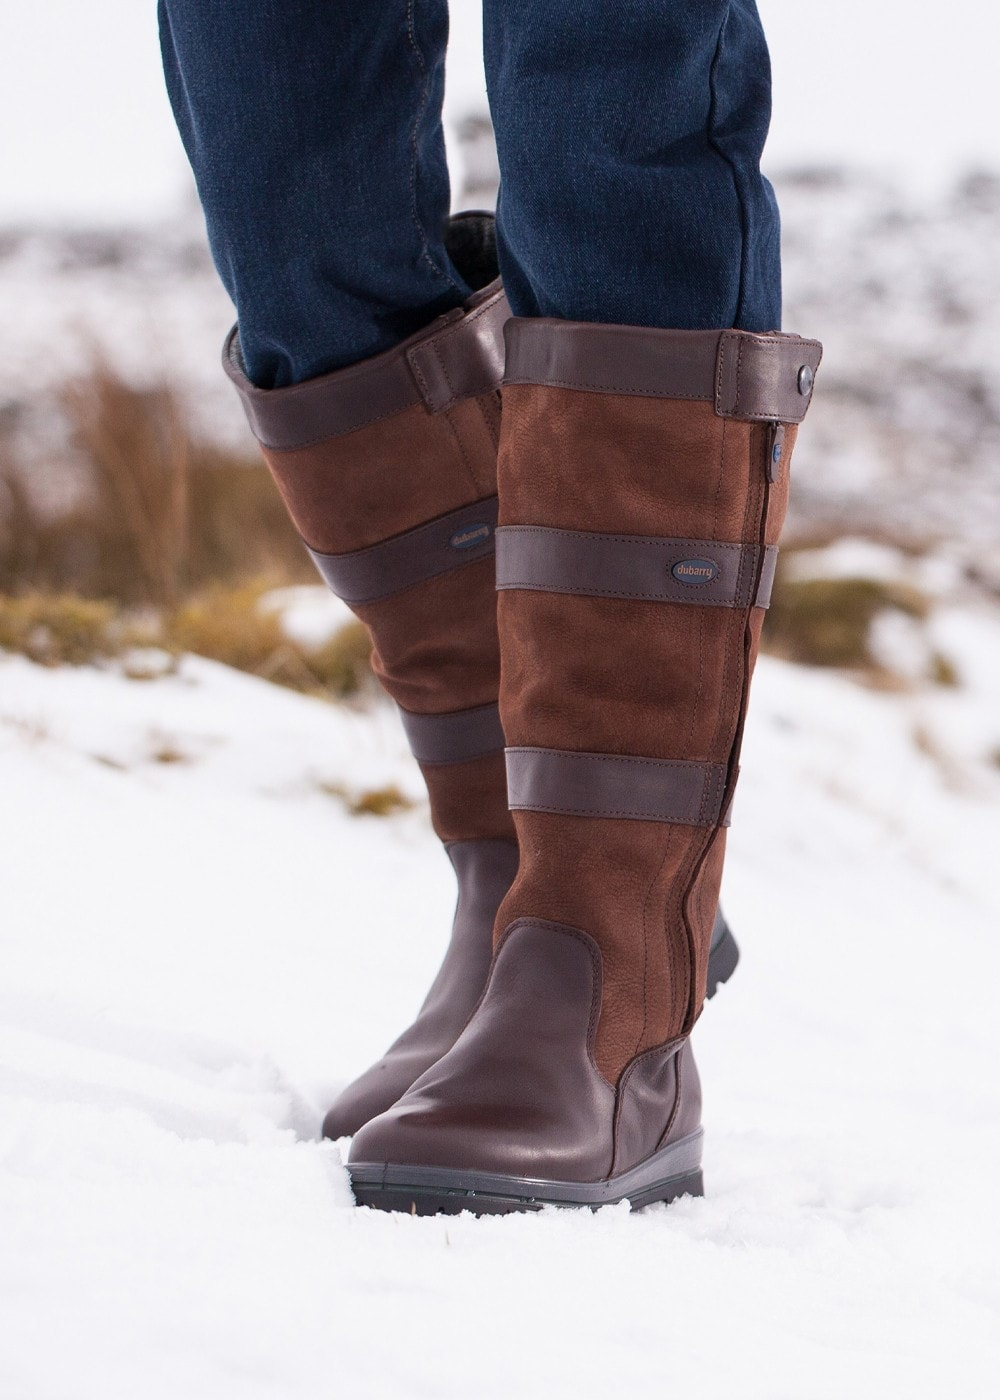 Dubarry Wexford Boots- A Hume